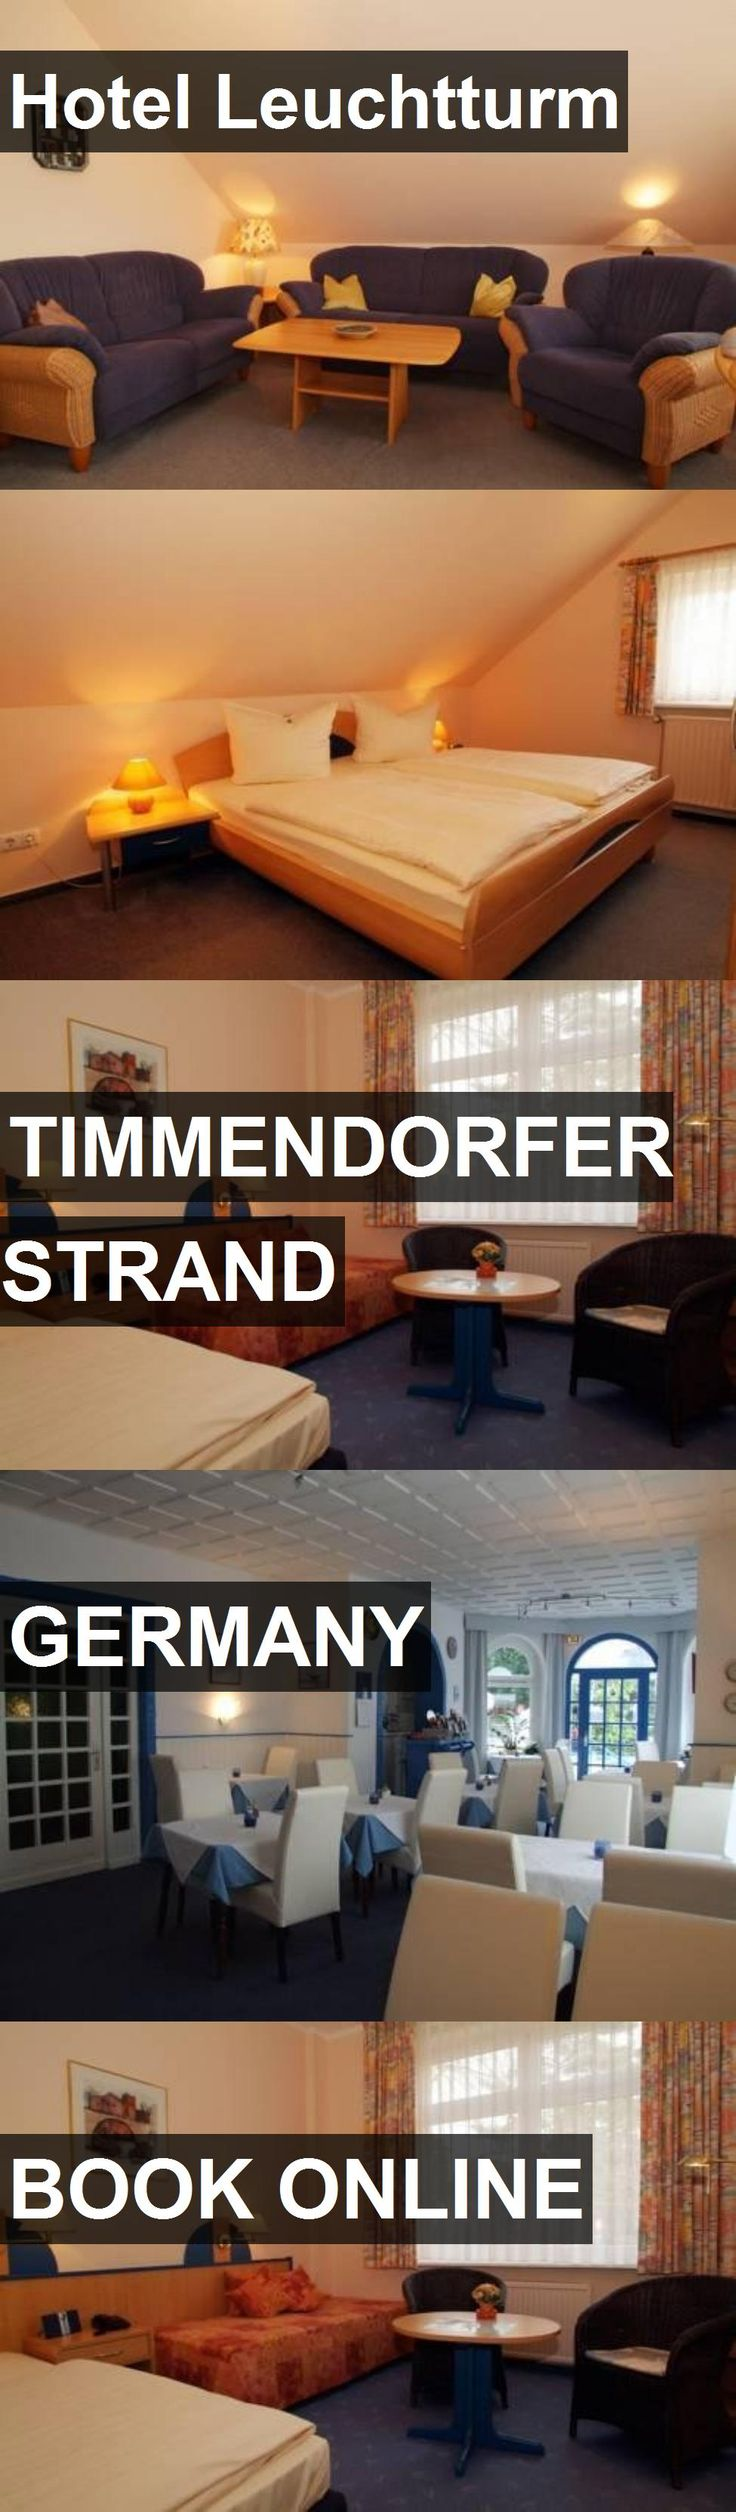 Hotel Leuchtturm in Timmendorfer Strand, Germany. For more information, photos, reviews and best prices please follow the link. #Germany #TimmendorferStrand #travel #vacation #hotel